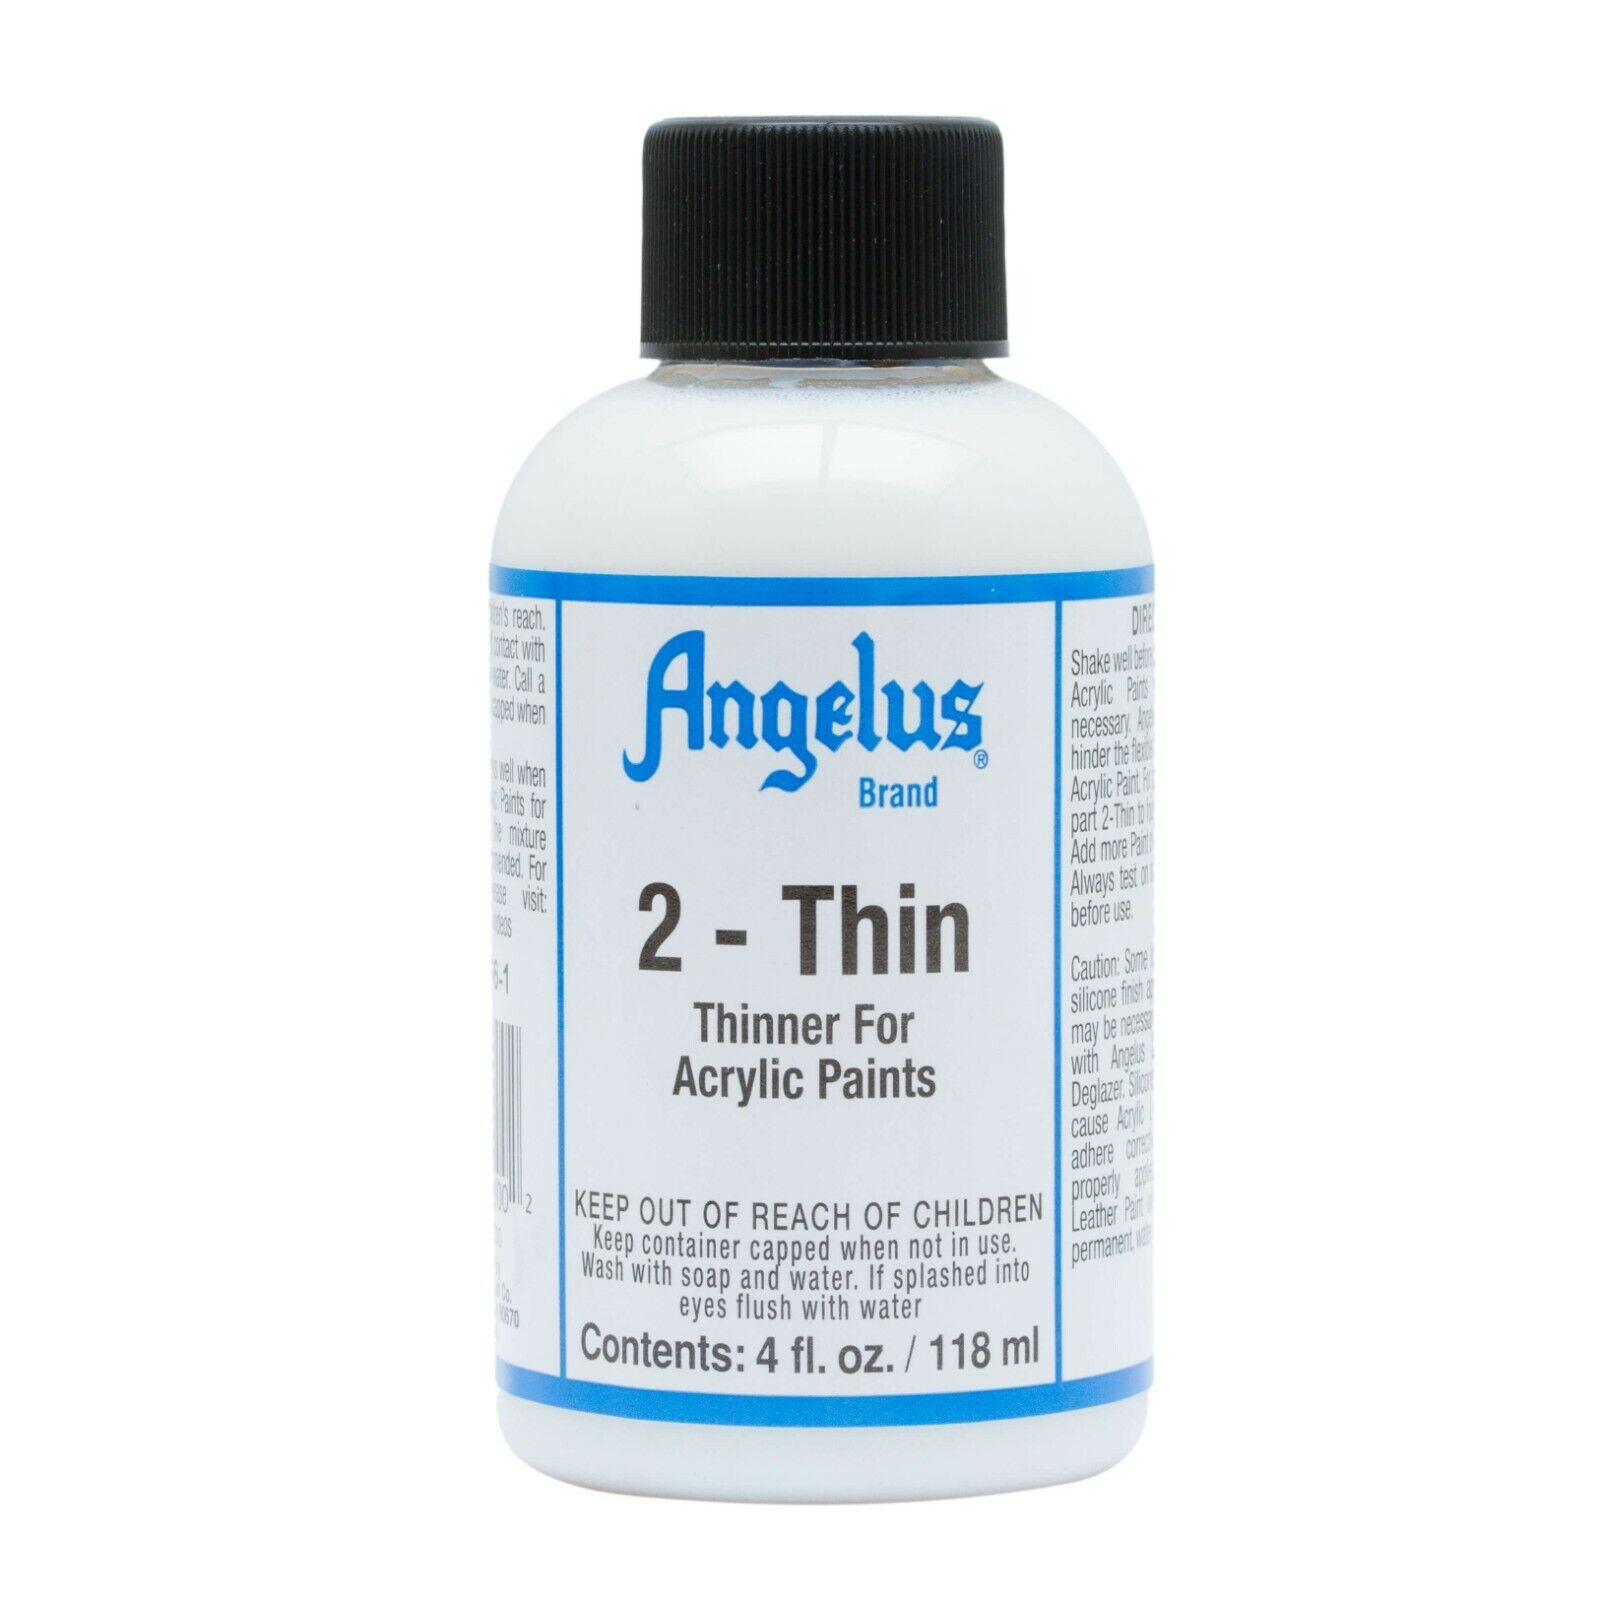 Angelus 2-thin Paint thinner for acrylic paints 4oz NEW Crafts